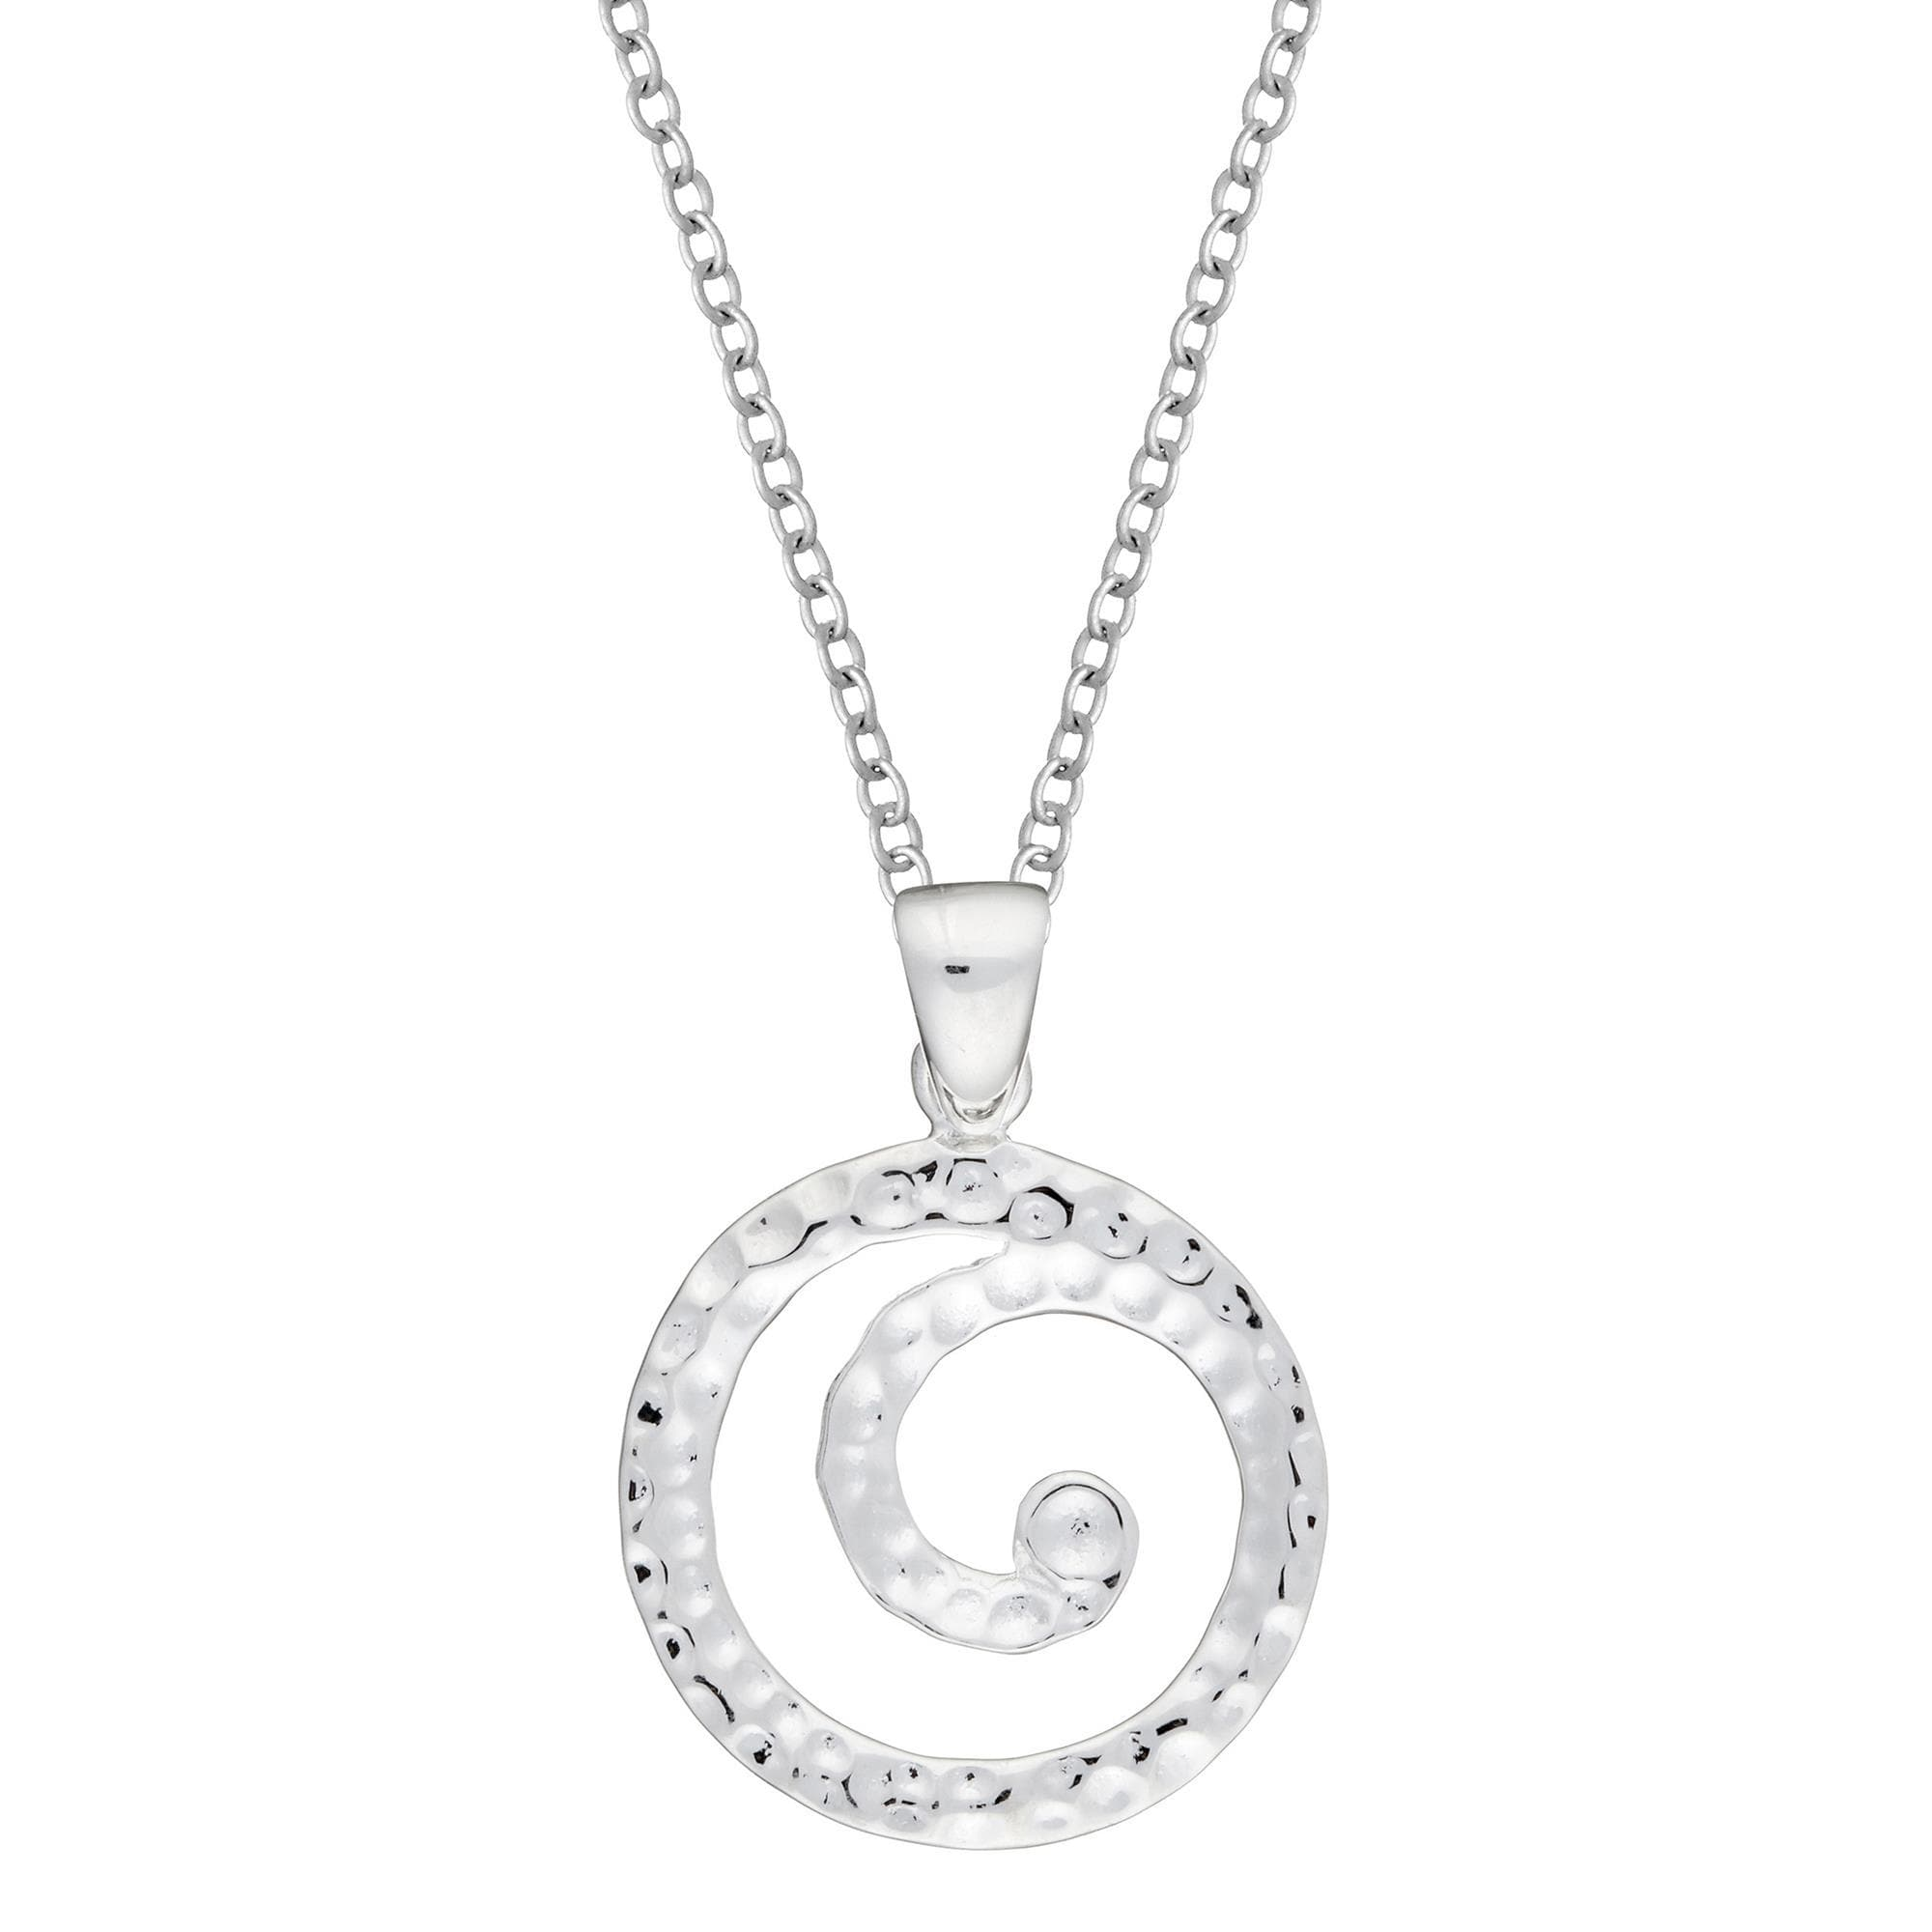 stone yuu coral a necklaces disc chain in hang silver sn by the sleek pendant red round on beauty inch design spirals laced spiral products dashing artisan necklace over bold sterling this alluring details